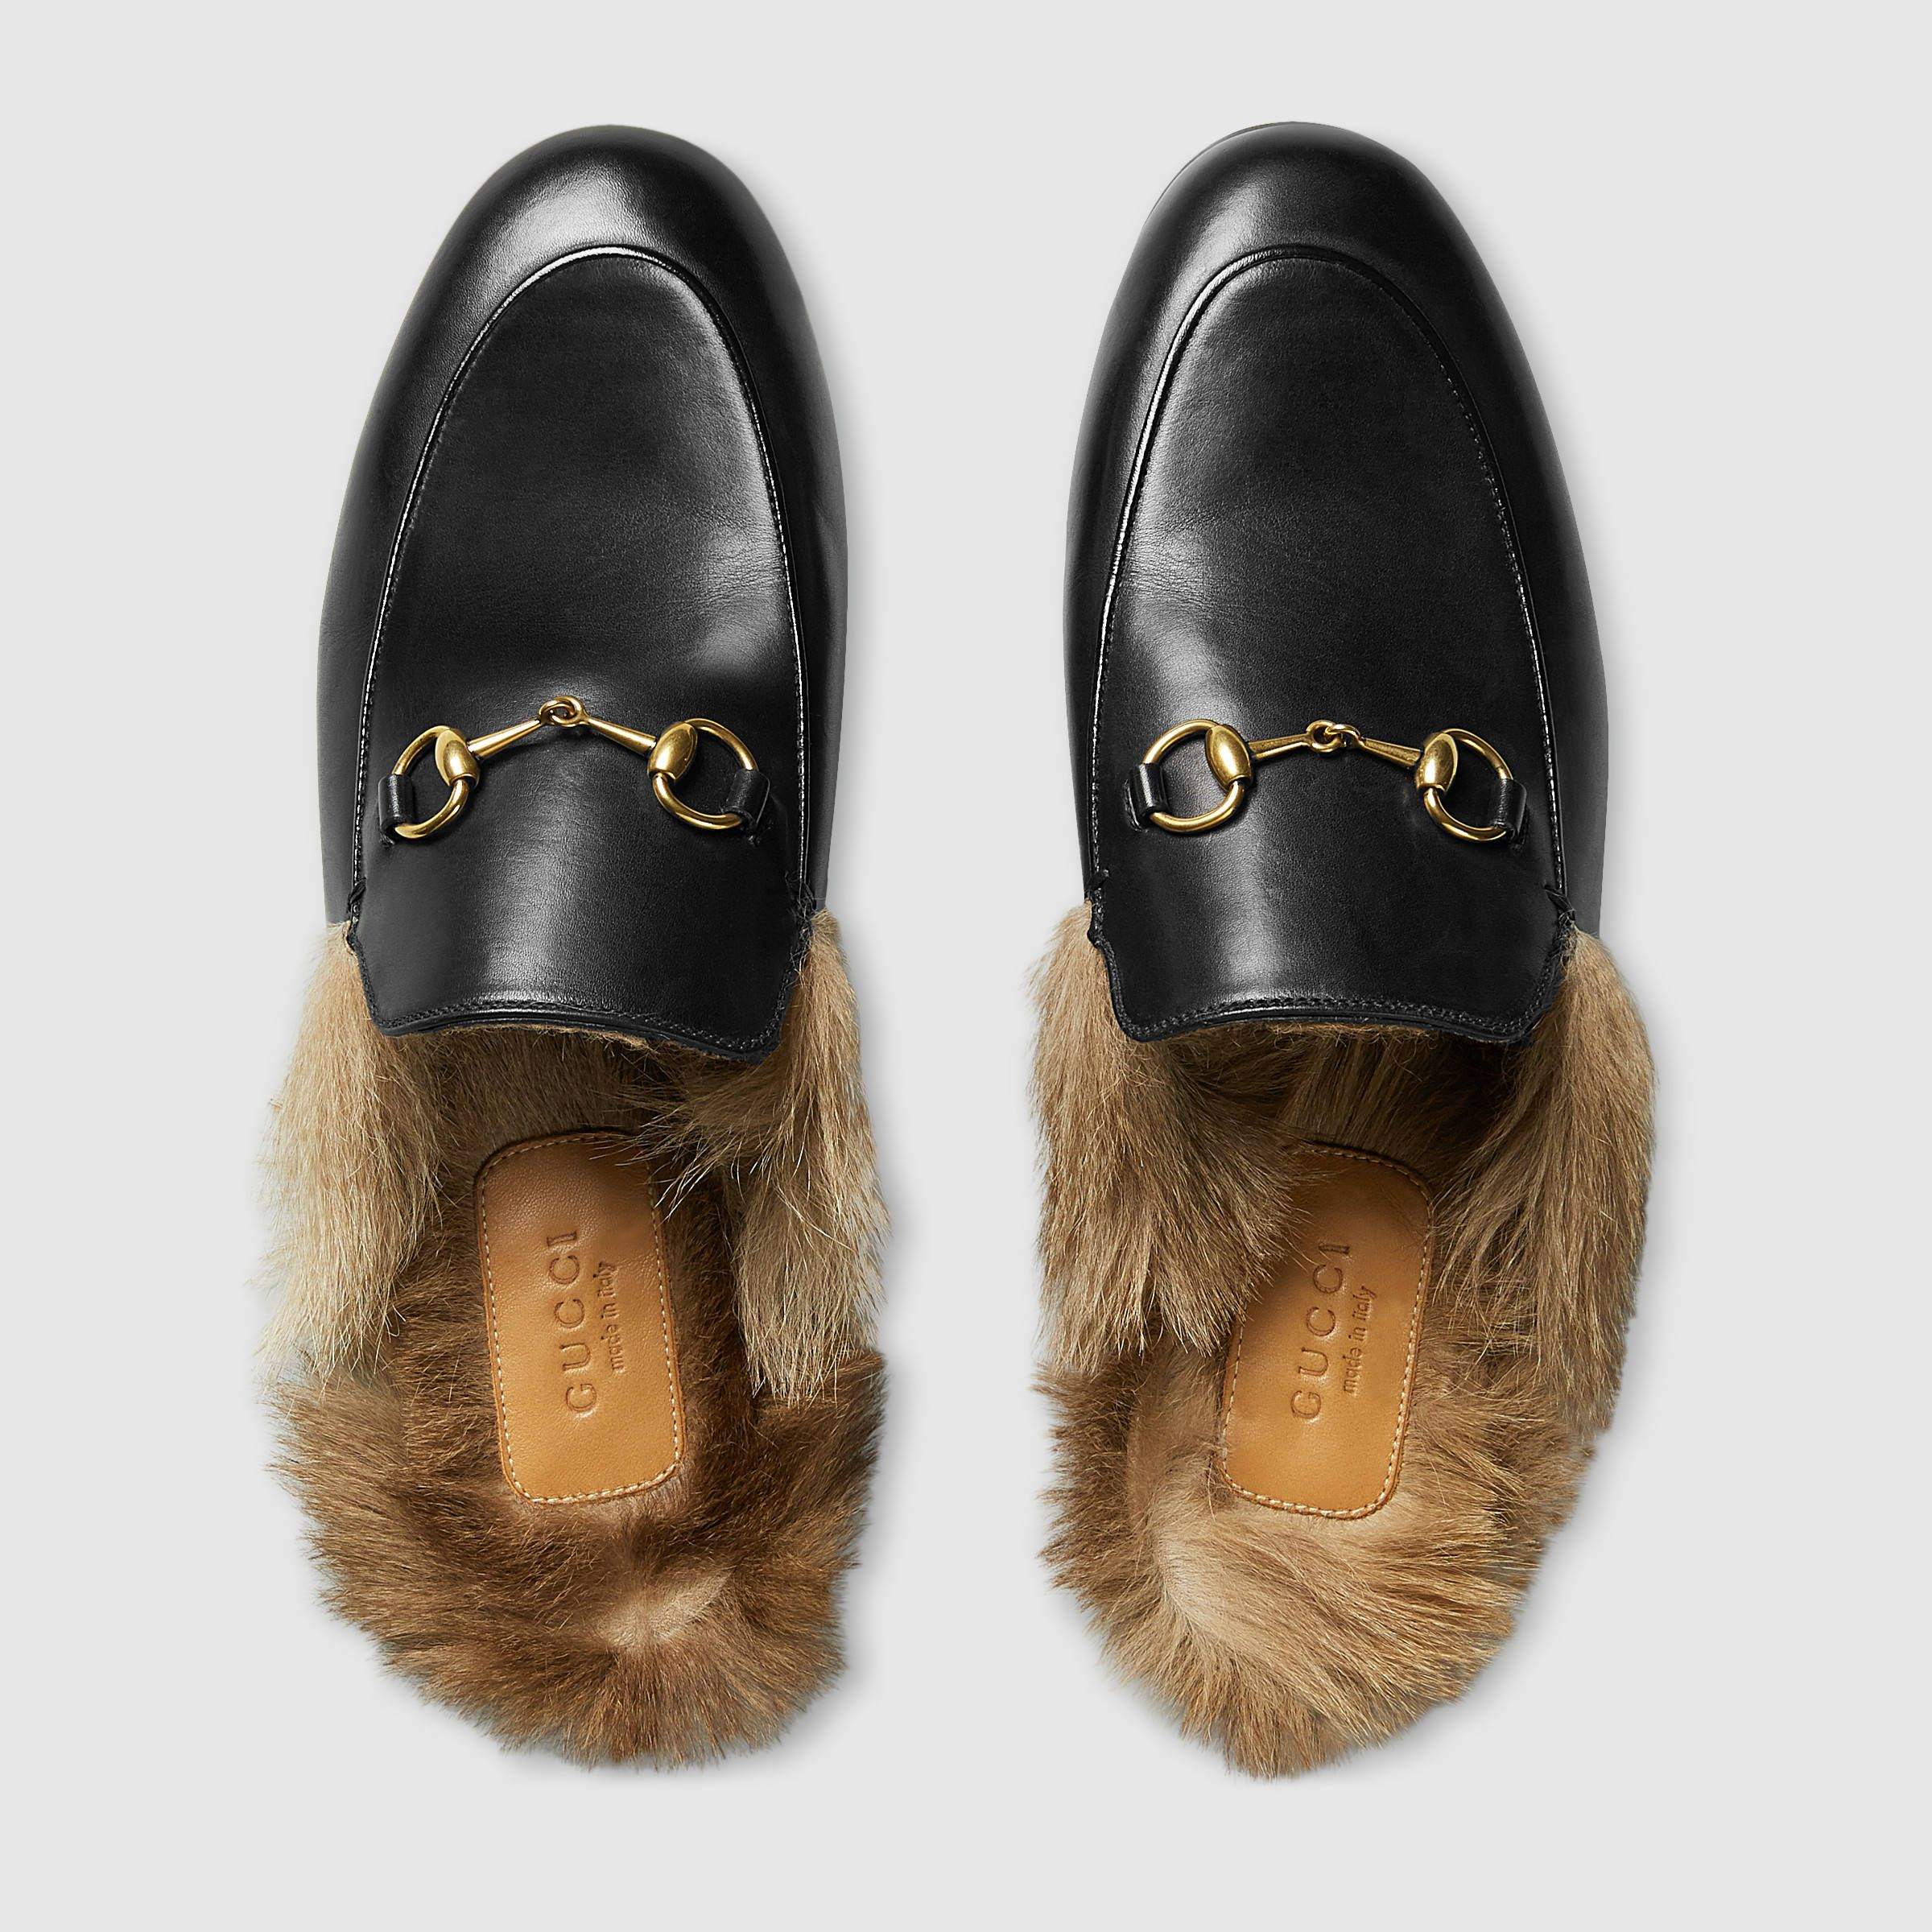 d4a237adf10 Gucci Women - Princetown leather slipper - 397749DKH201063 ...